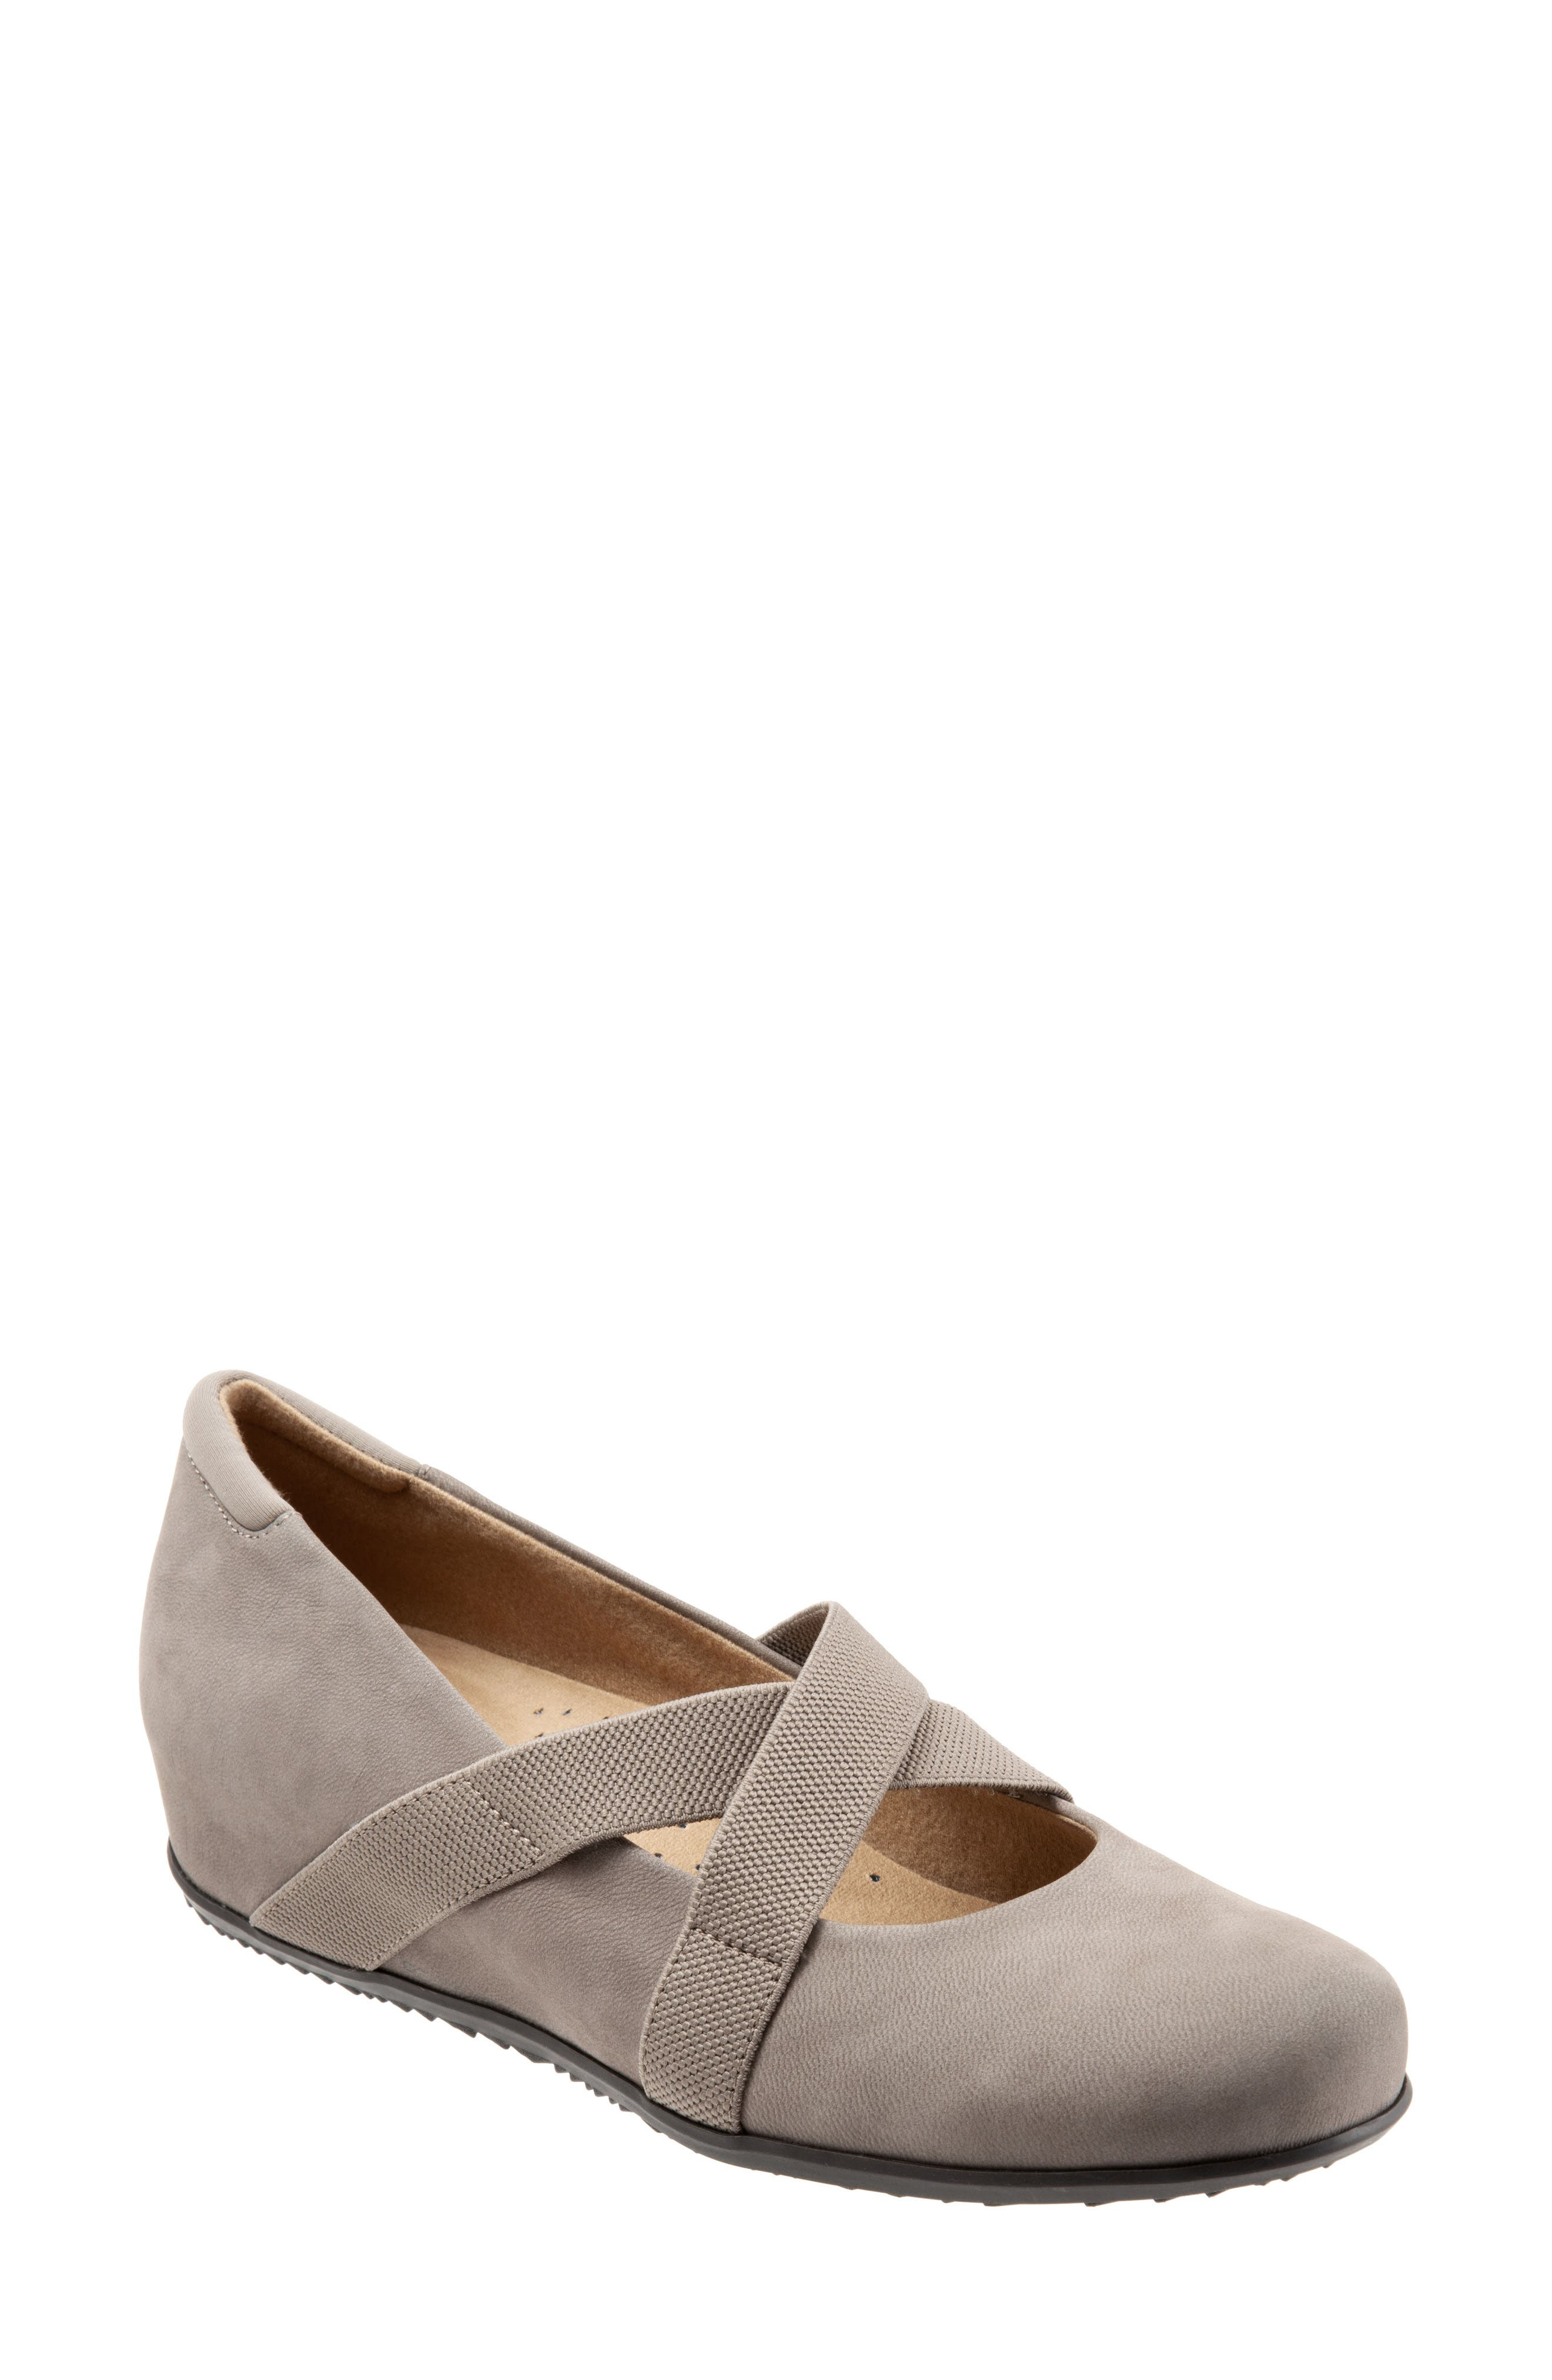 Waverly Mary Jane Wedge,                             Main thumbnail 1, color,                             TAUPE LEATHER